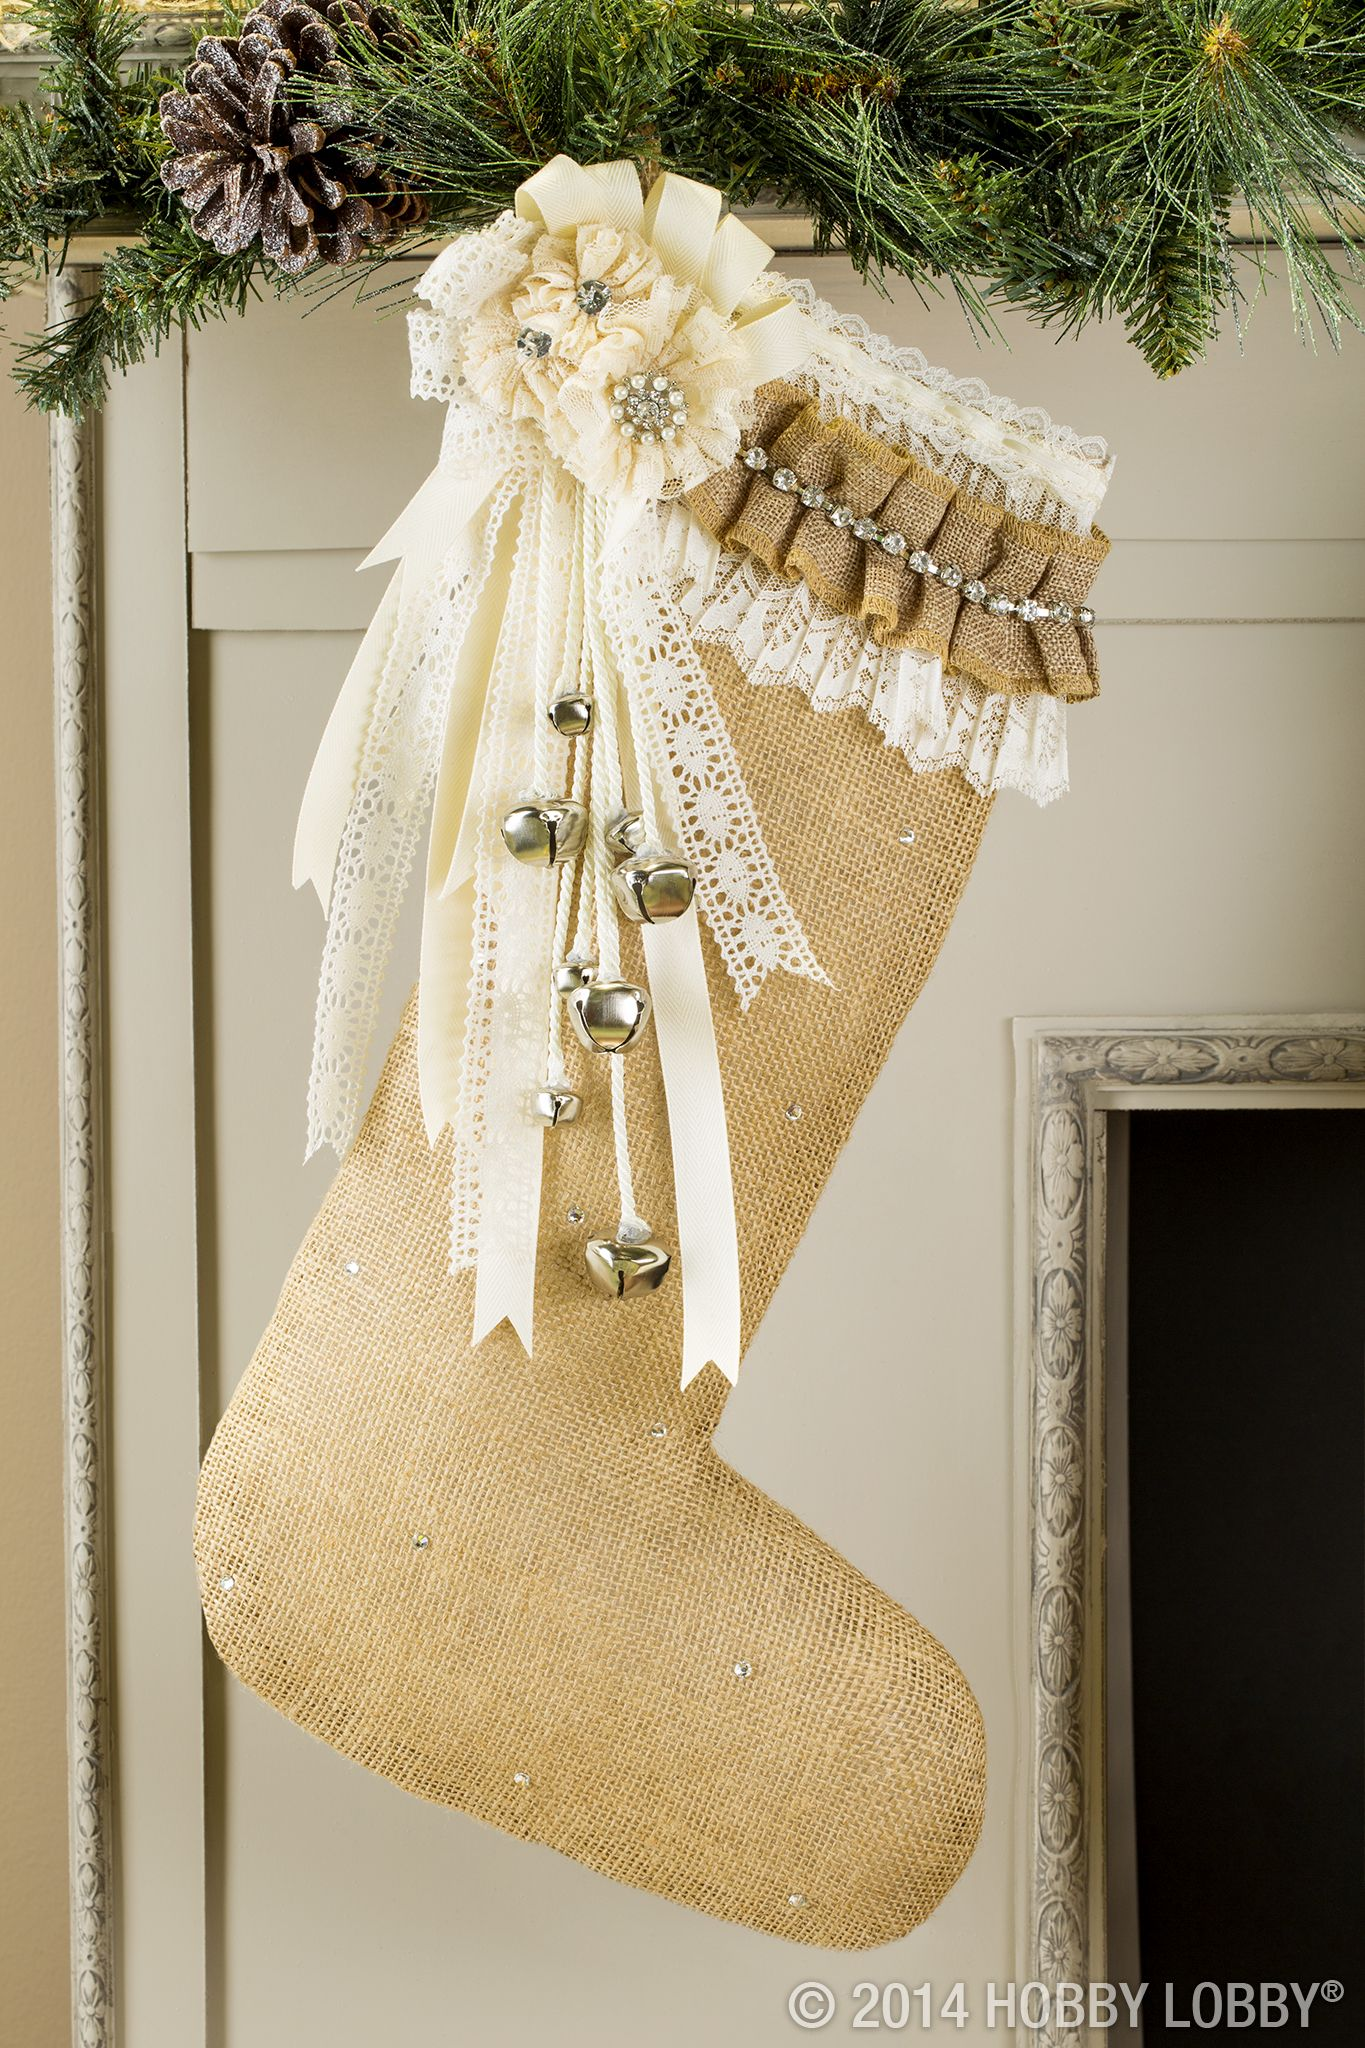 Create a Christmas stocking of your own for a magical fireplace display!